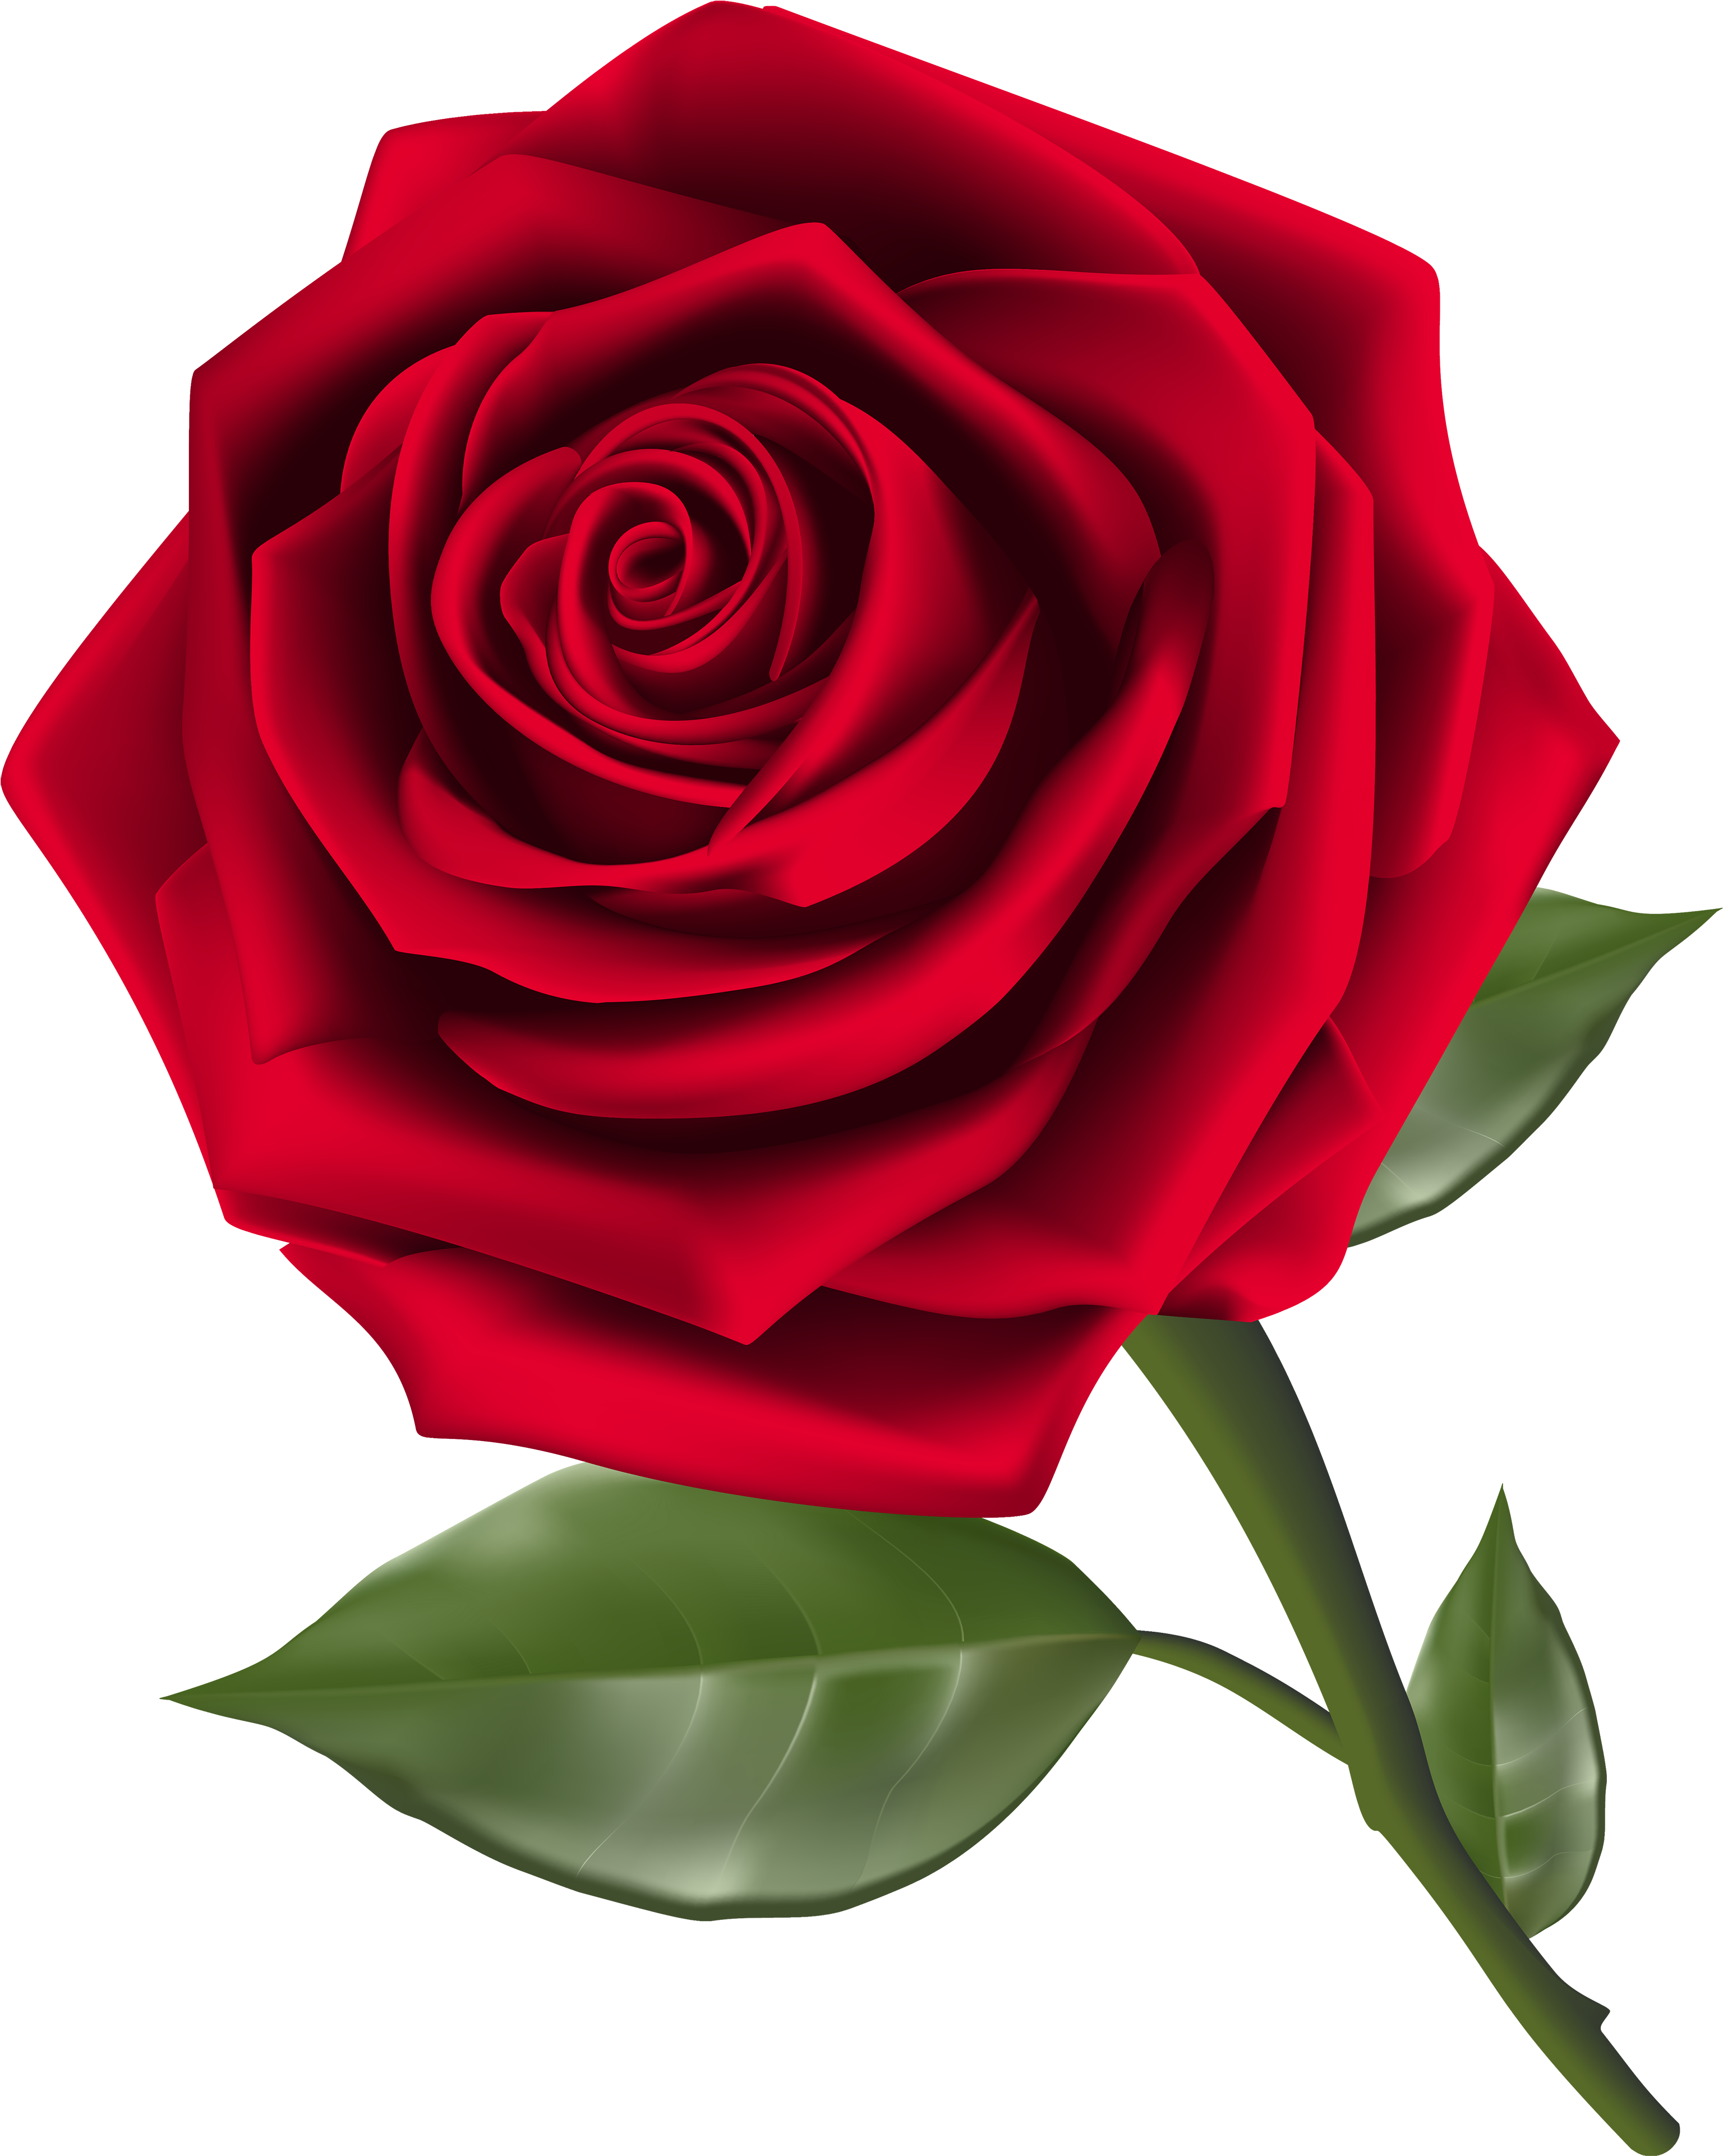 Beautiful Red Rose Png Clipart - Rose Clipart Transparent Background